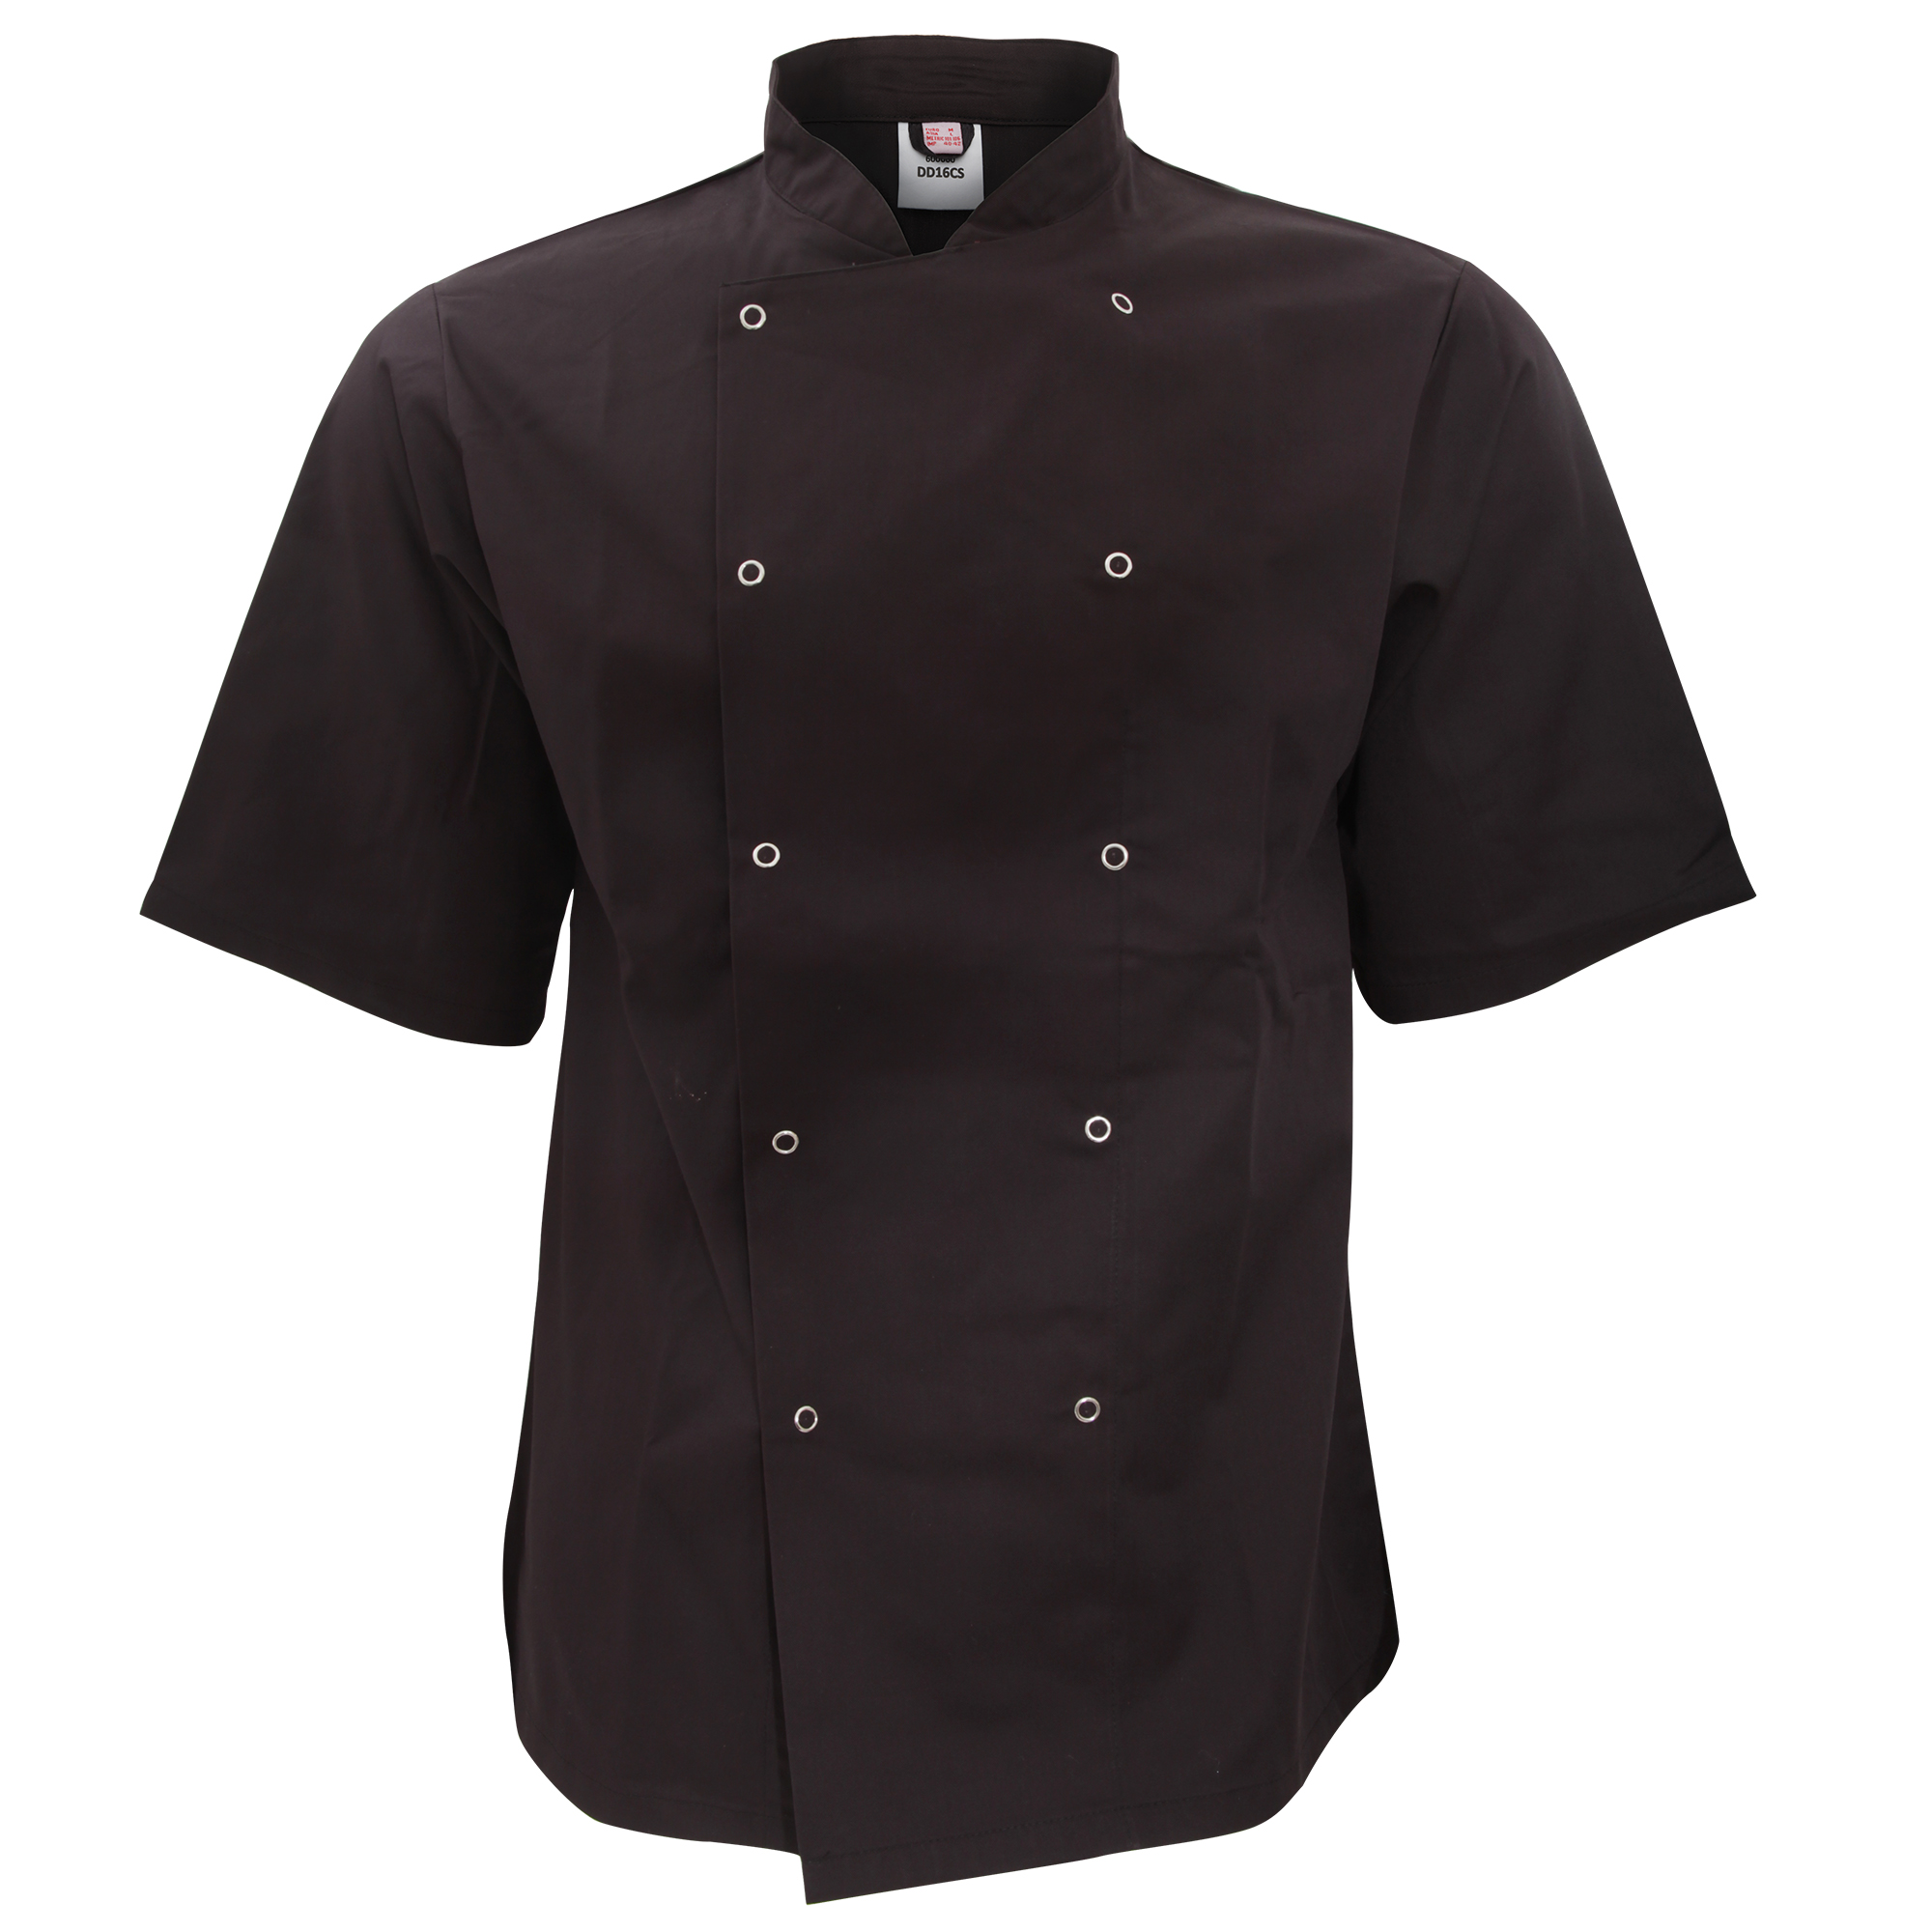 AFD Adults Unisex Short Sleeve Chefs Jacket PC2500 Business & Industrial Restaurant & Food Service